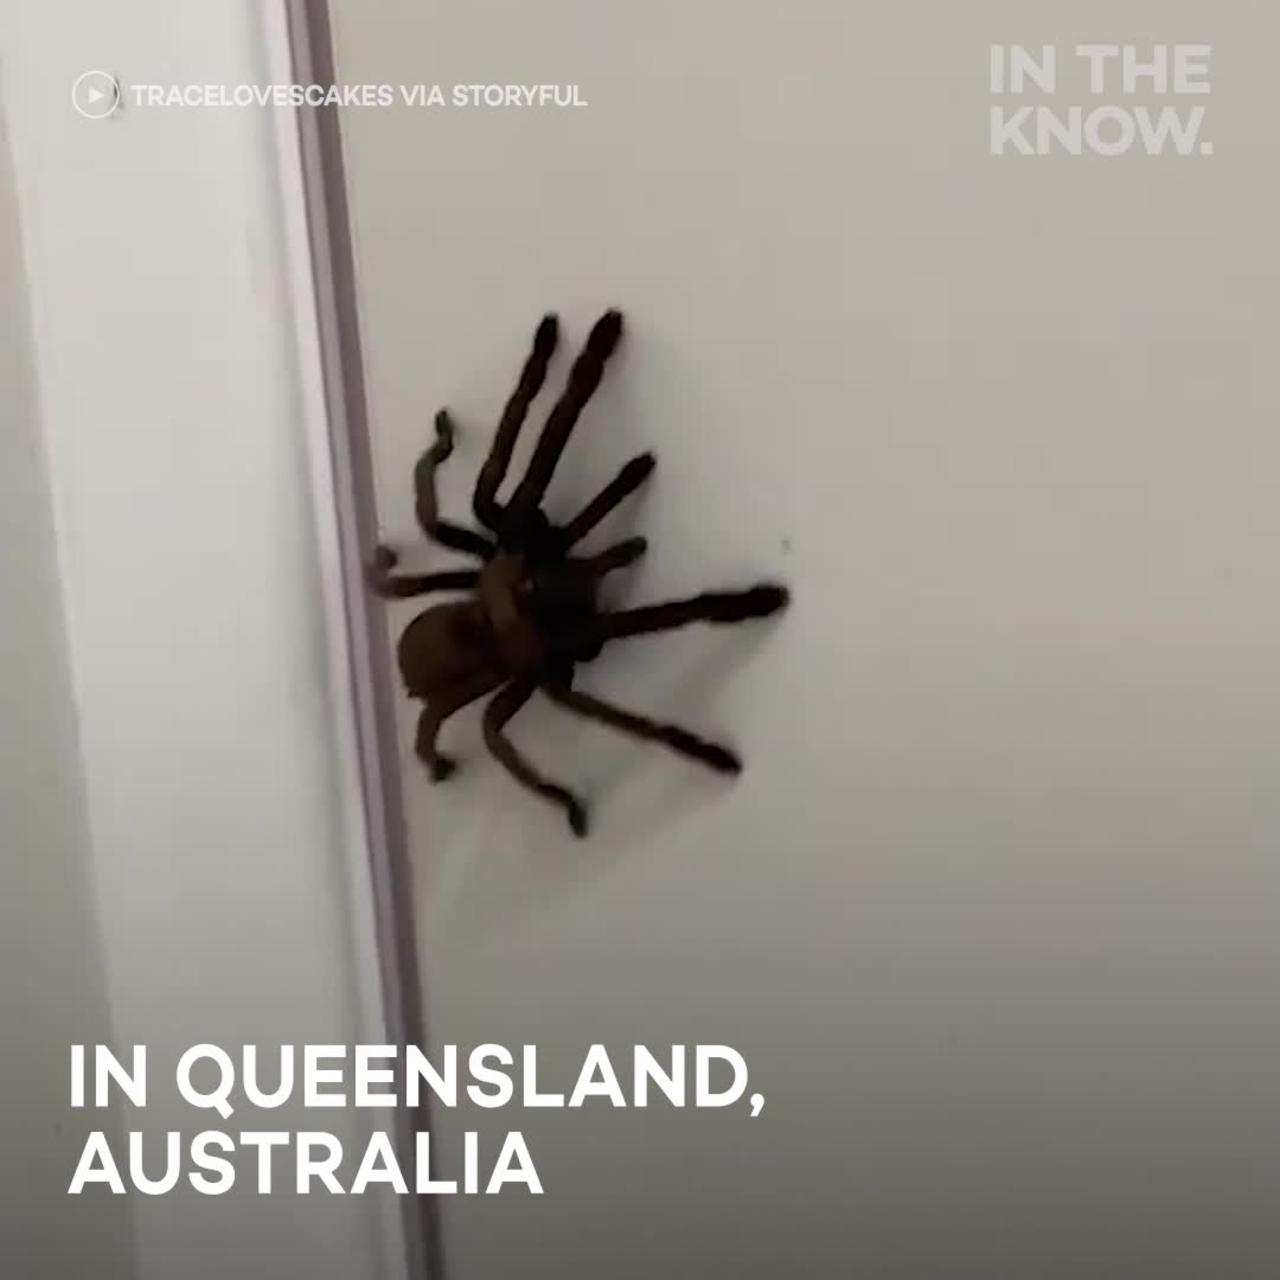 Woman captures giant spider in her own home